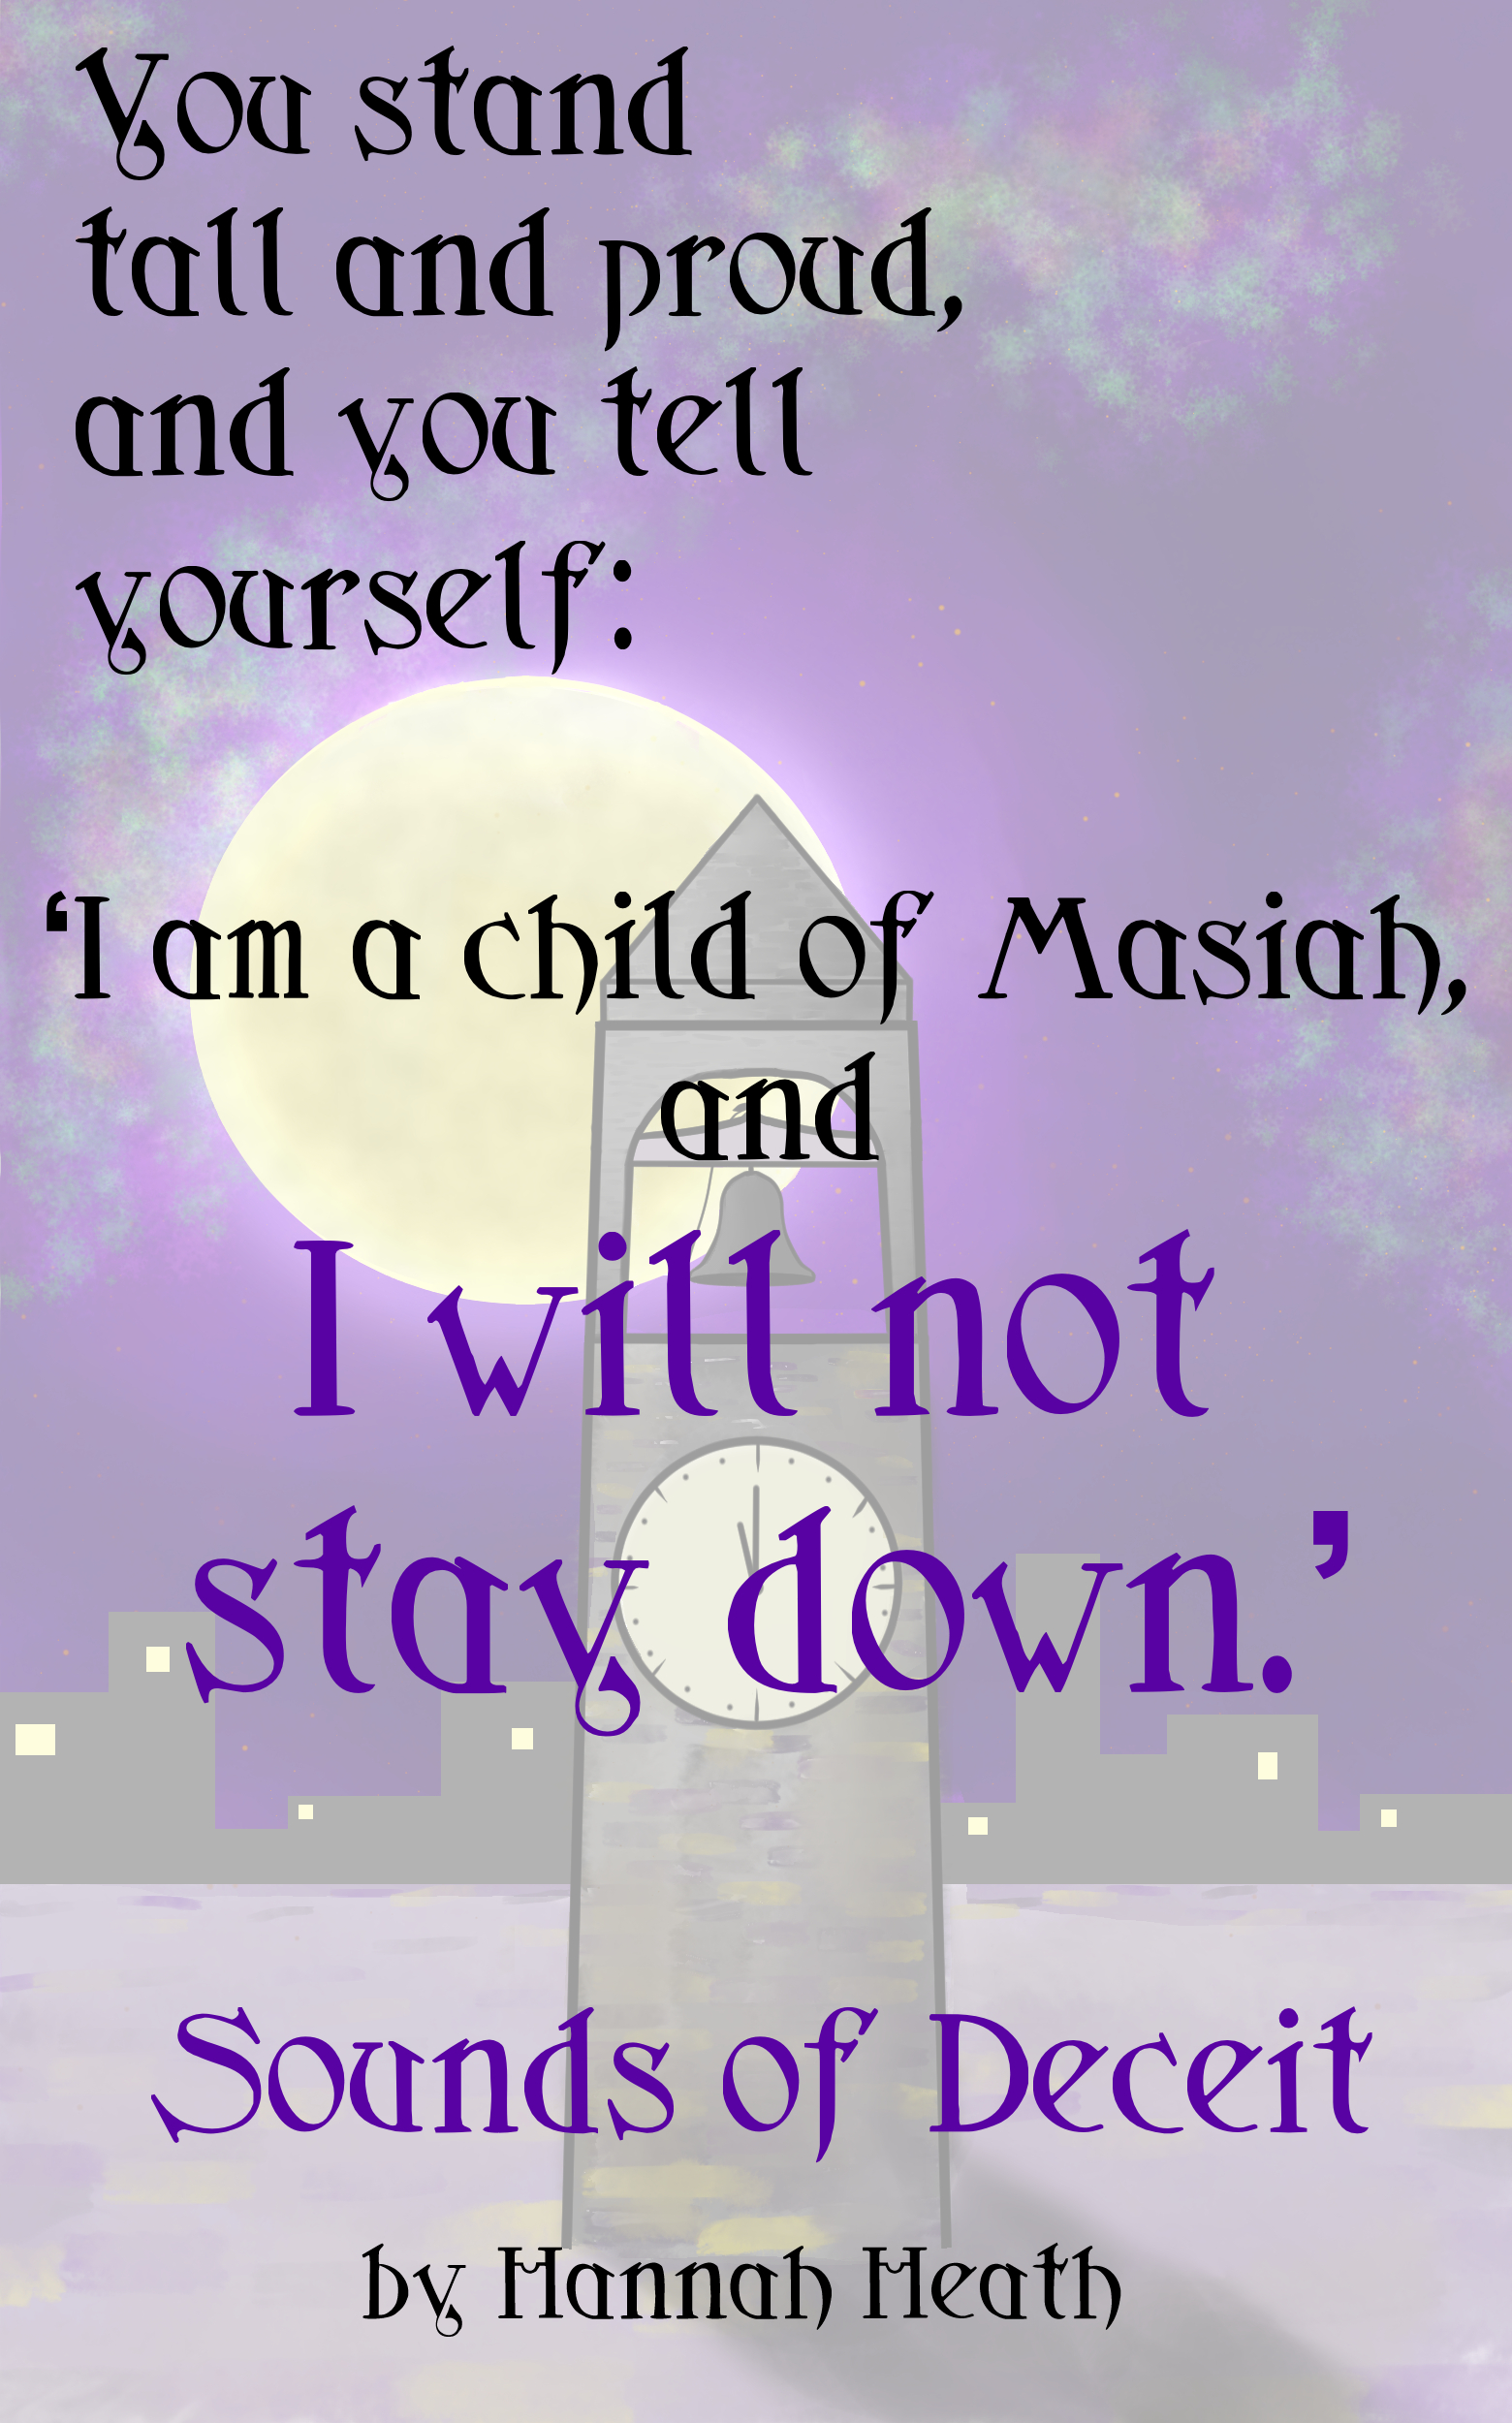 Will Not Stay Down Cover Quote.jpg